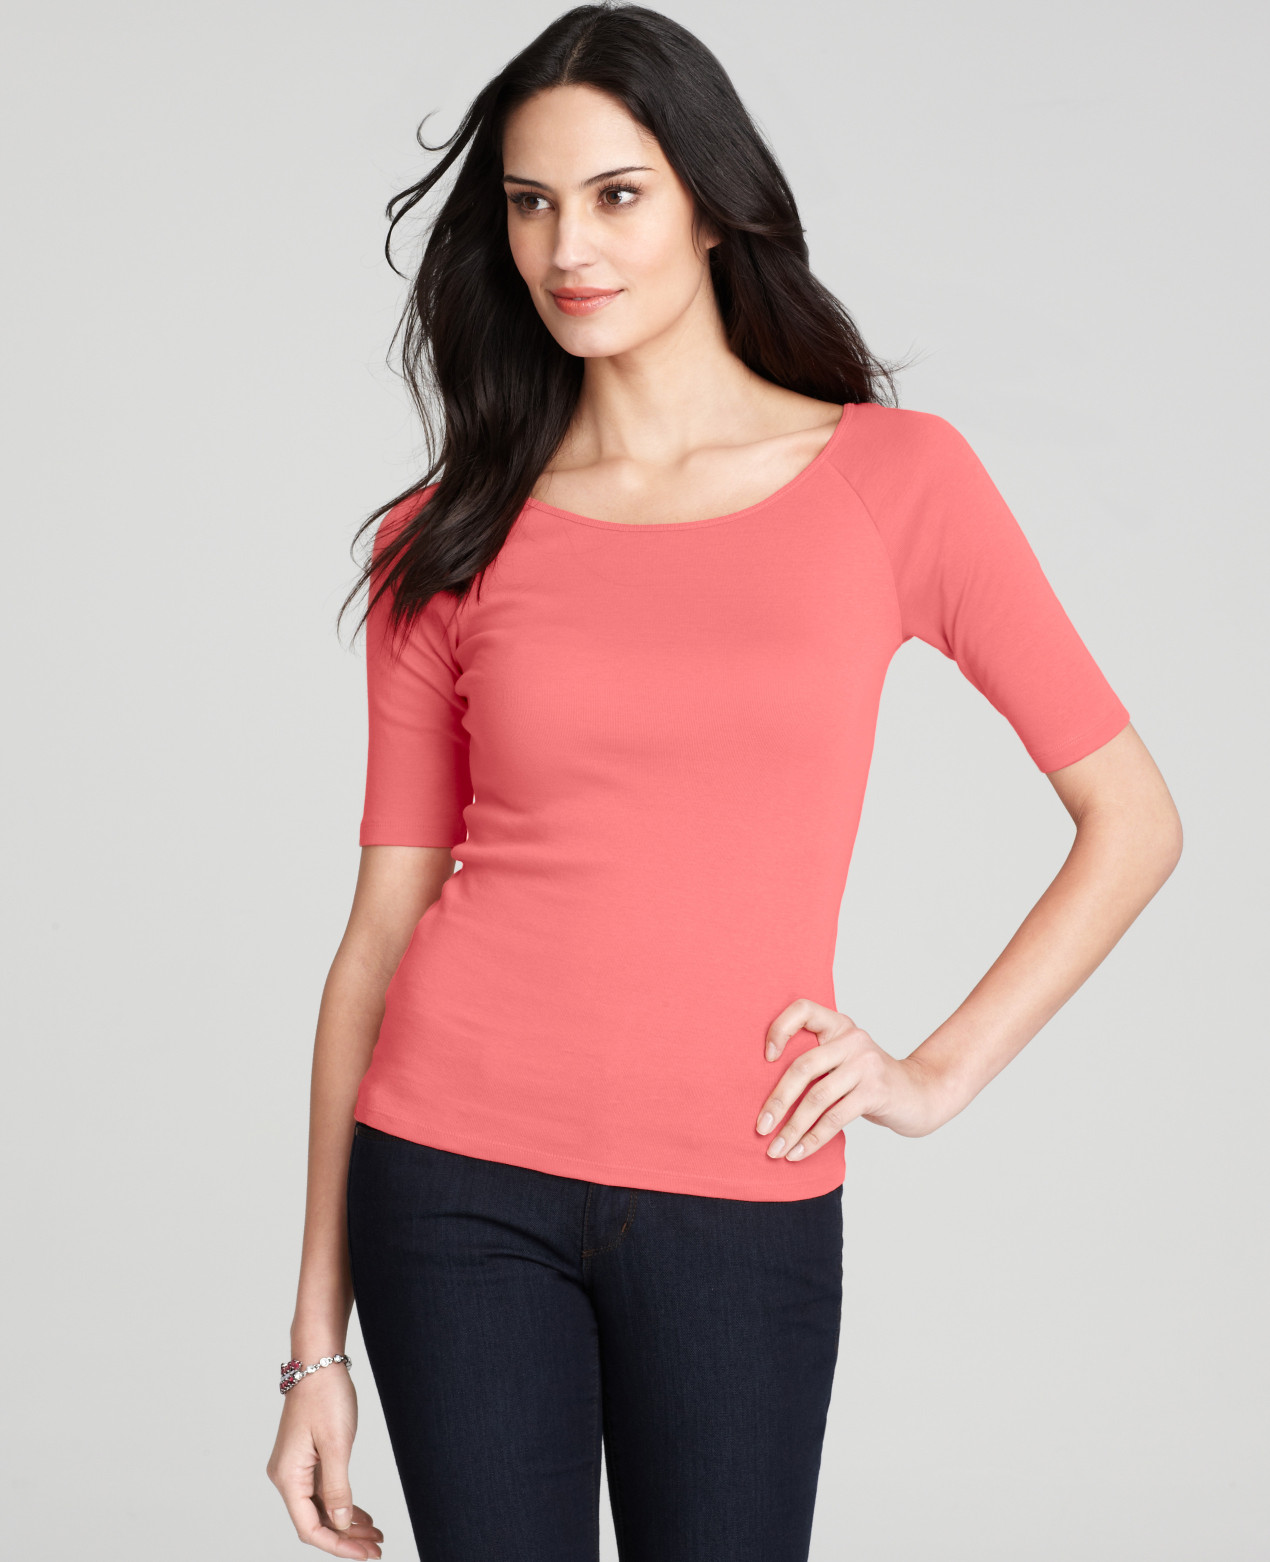 Ann Taylor Petite Ballet Neck Short Sleeve Tee In Pink